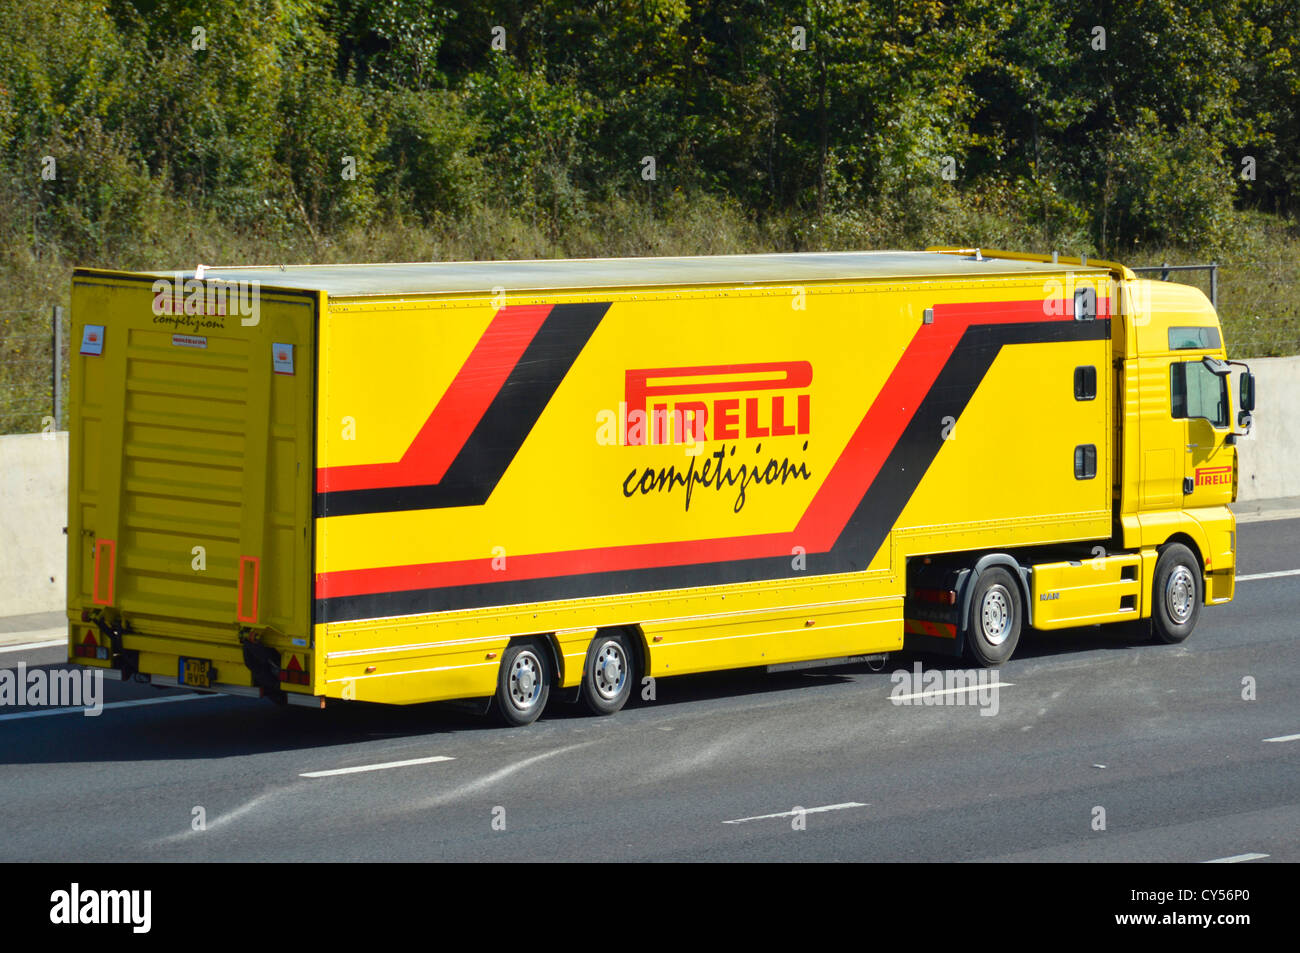 Pirelli articulated competition support lorry and trailer on motorway - Stock Image